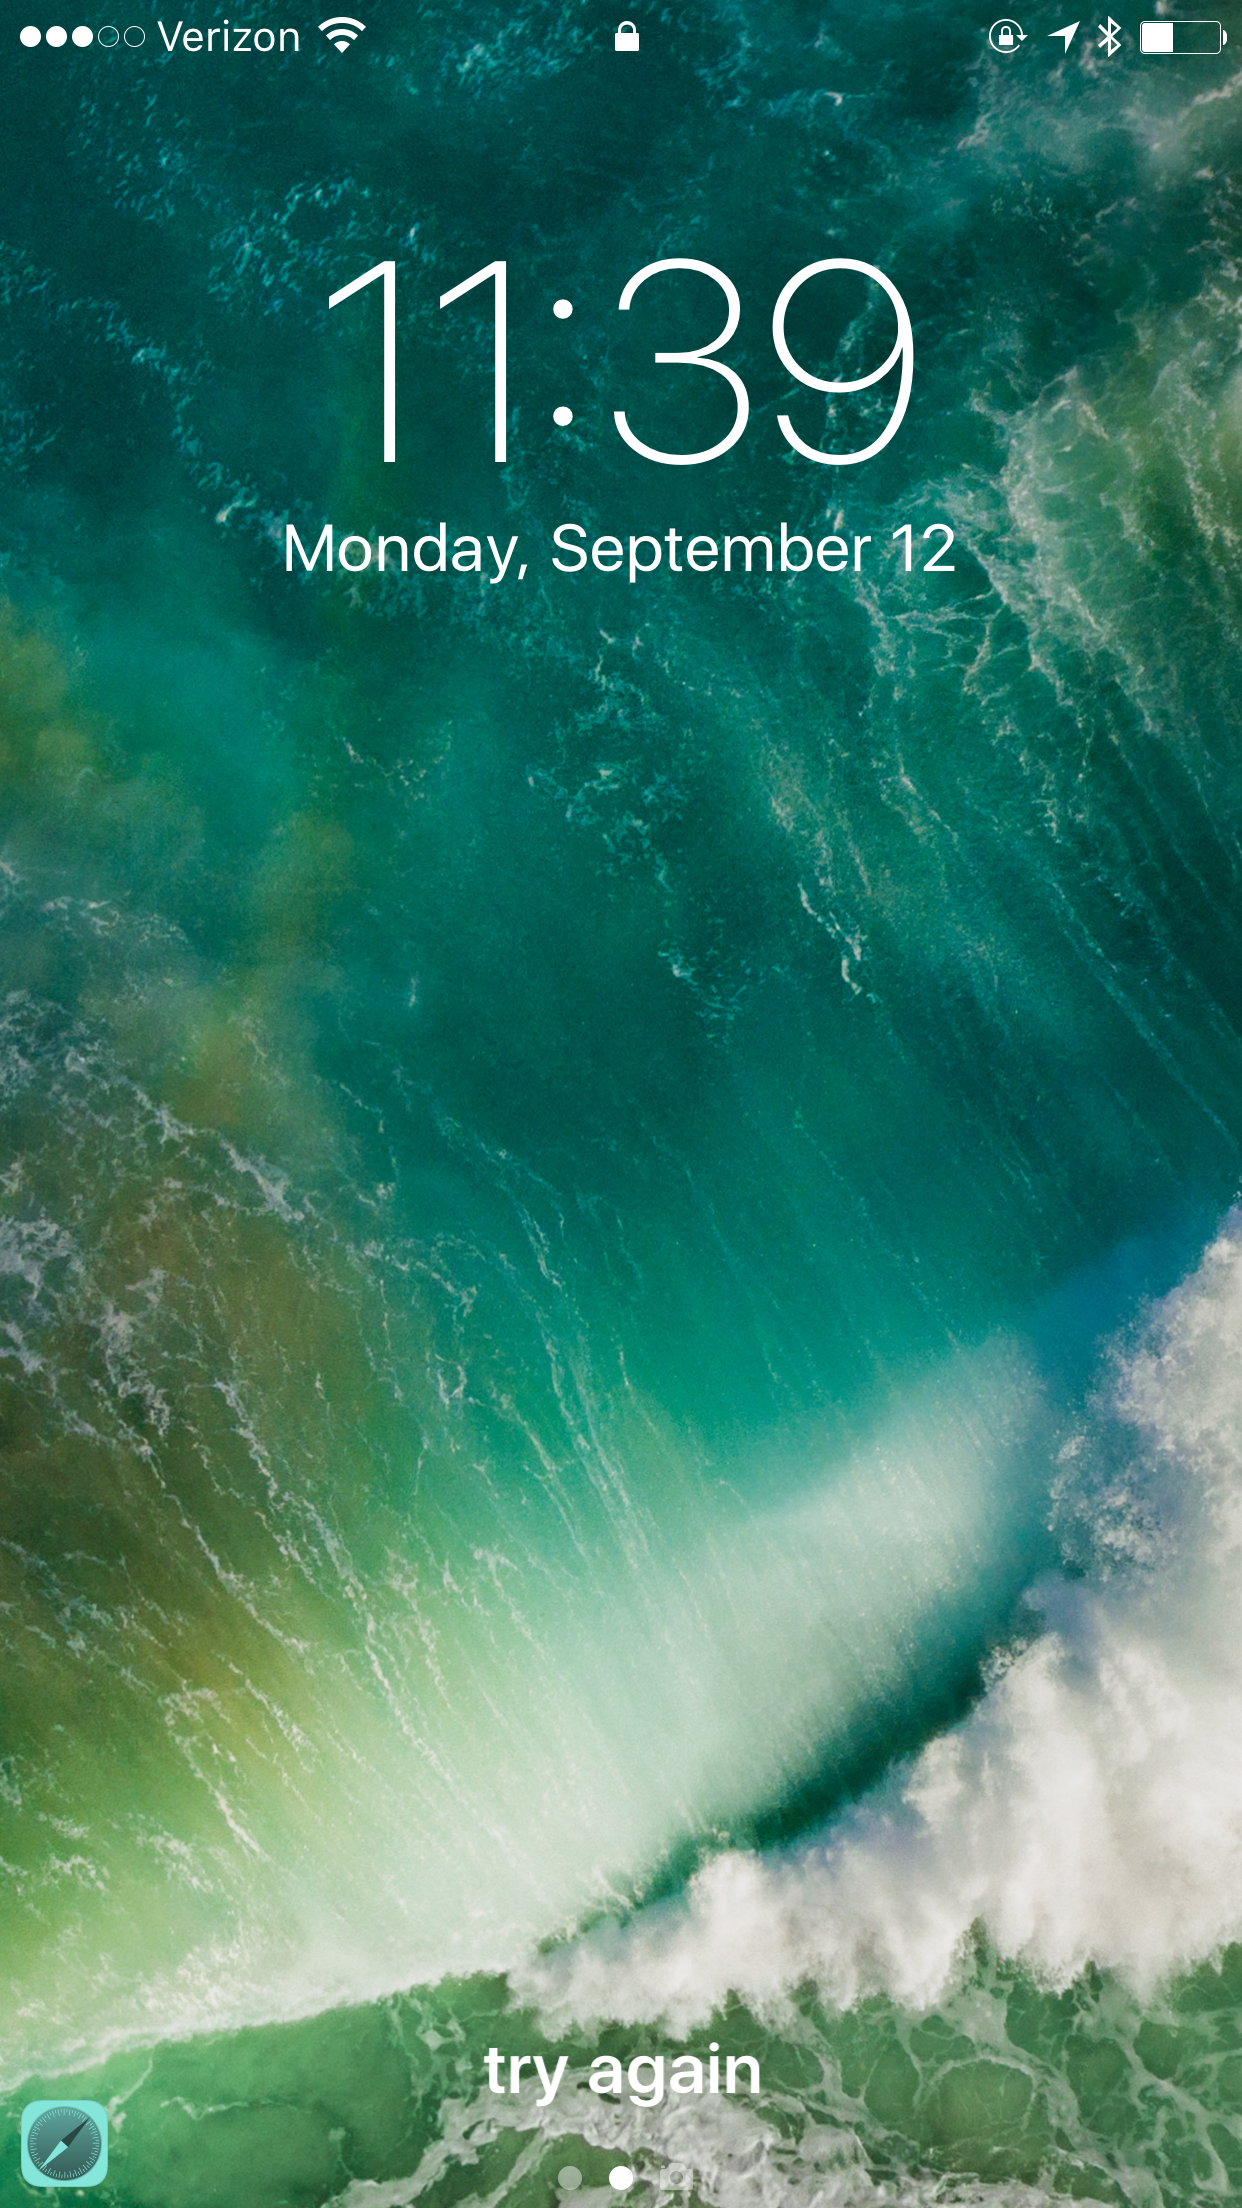 Image showing default iOS 10 Lock Screen